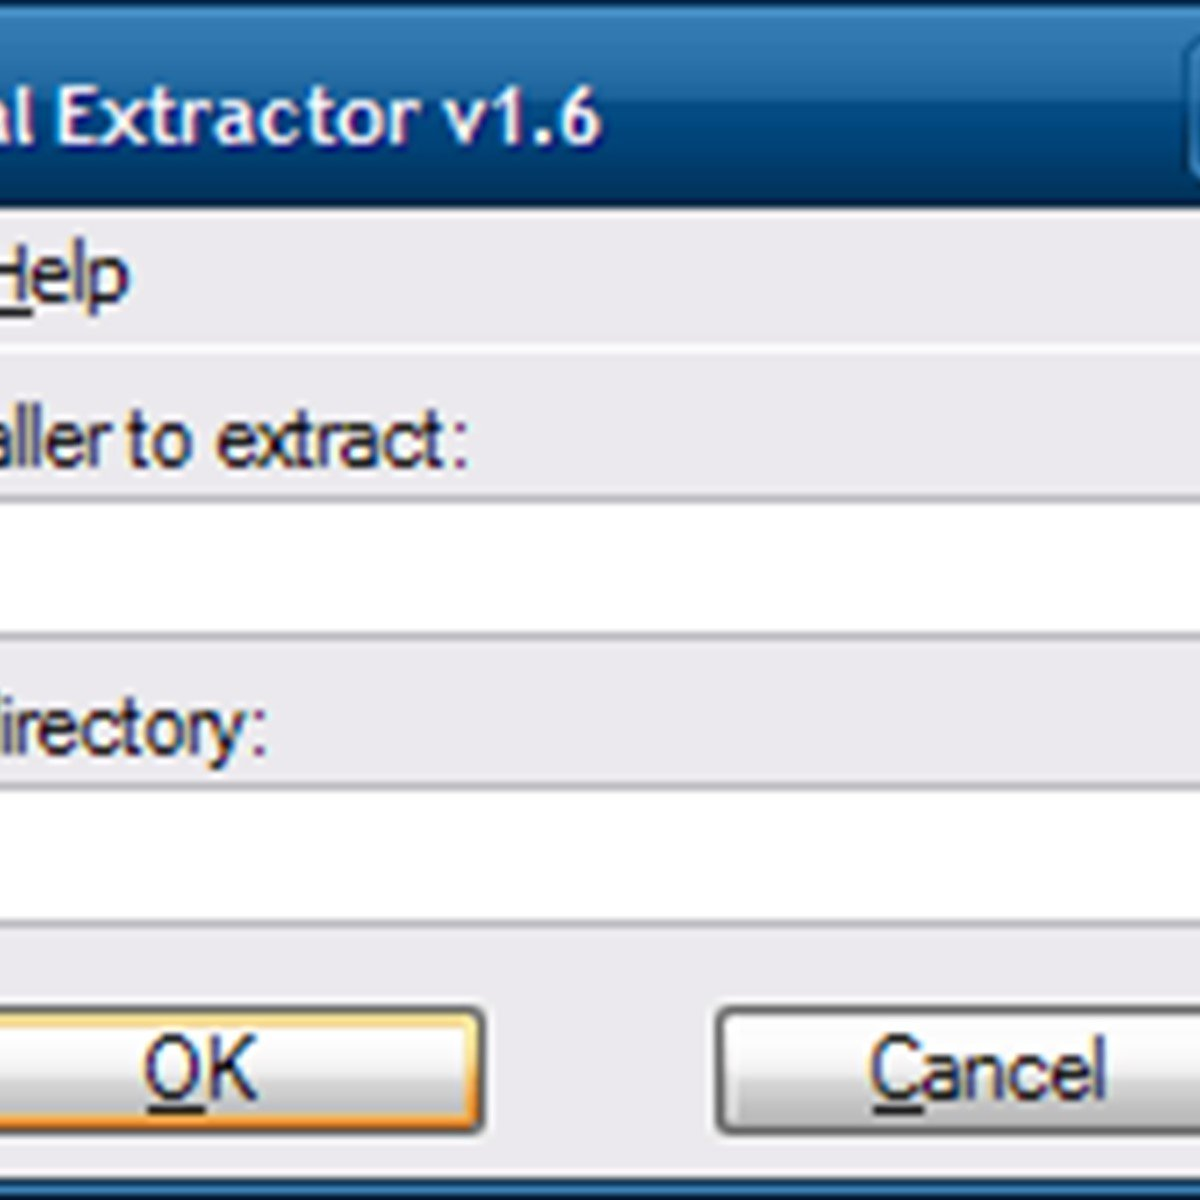 Universal Extractor Alternatives and Similar Software